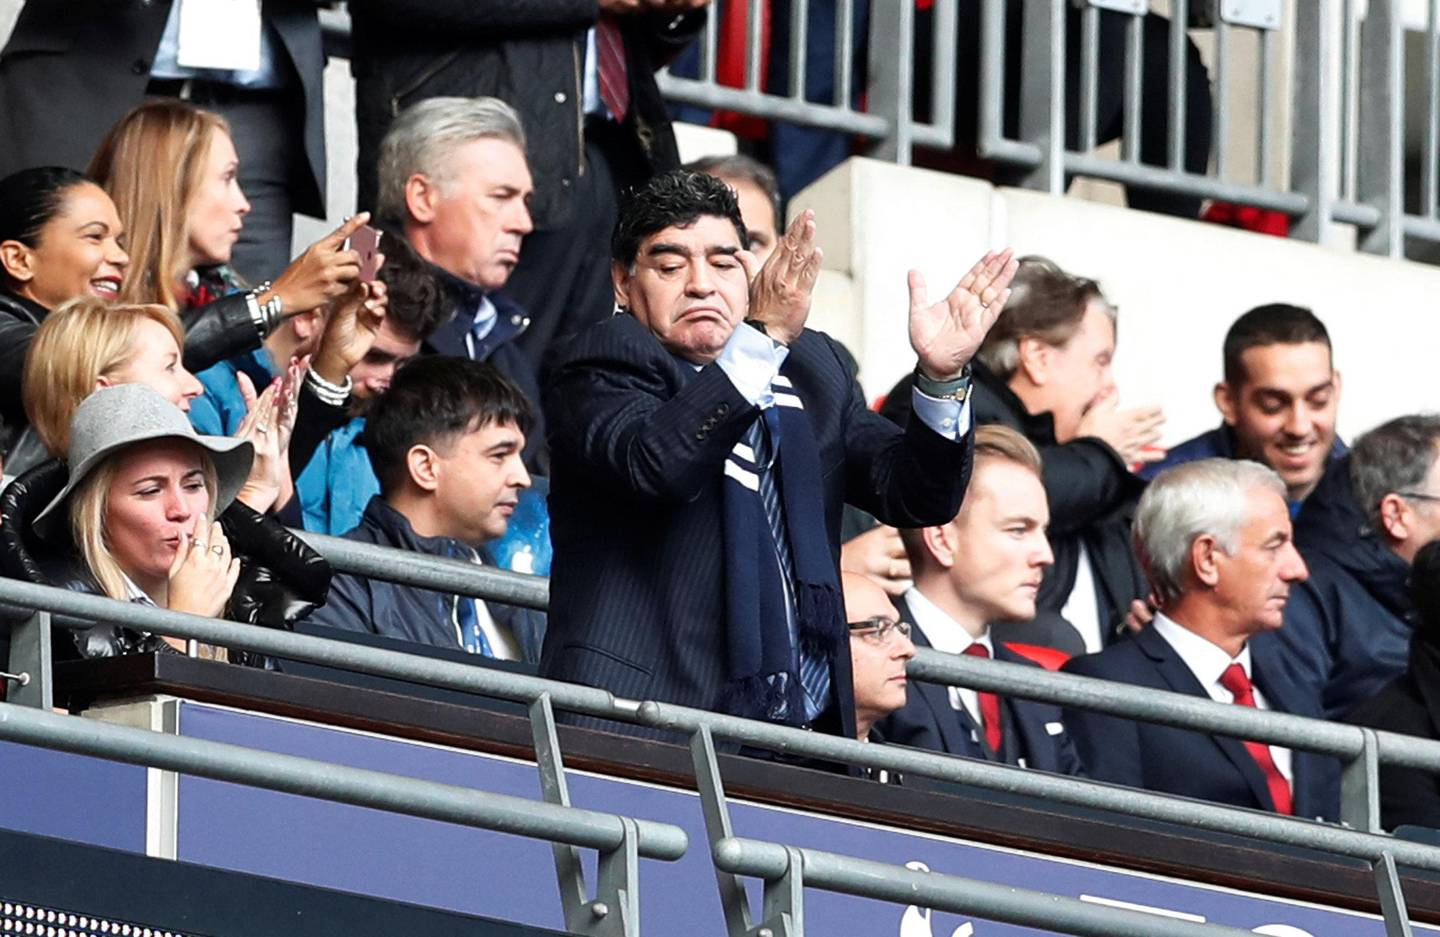 """Soccer Football - Premier League - Tottenham Hotspur vs Liverpool - Wembley Stadium, London, Britain - October 22, 2017   Diego Maradona applauds after Tottenham's Harry Kane scores their first goal    Action Images via Reuters/Matthew Childs    EDITORIAL USE ONLY. No use with unauthorized audio, video, data, fixture lists, club/league logos or """"live"""" services. Online in-match use limited to 75 images, no video emulation. No use in betting, games or single club/league/player publications. Please contact your account representative for further details."""